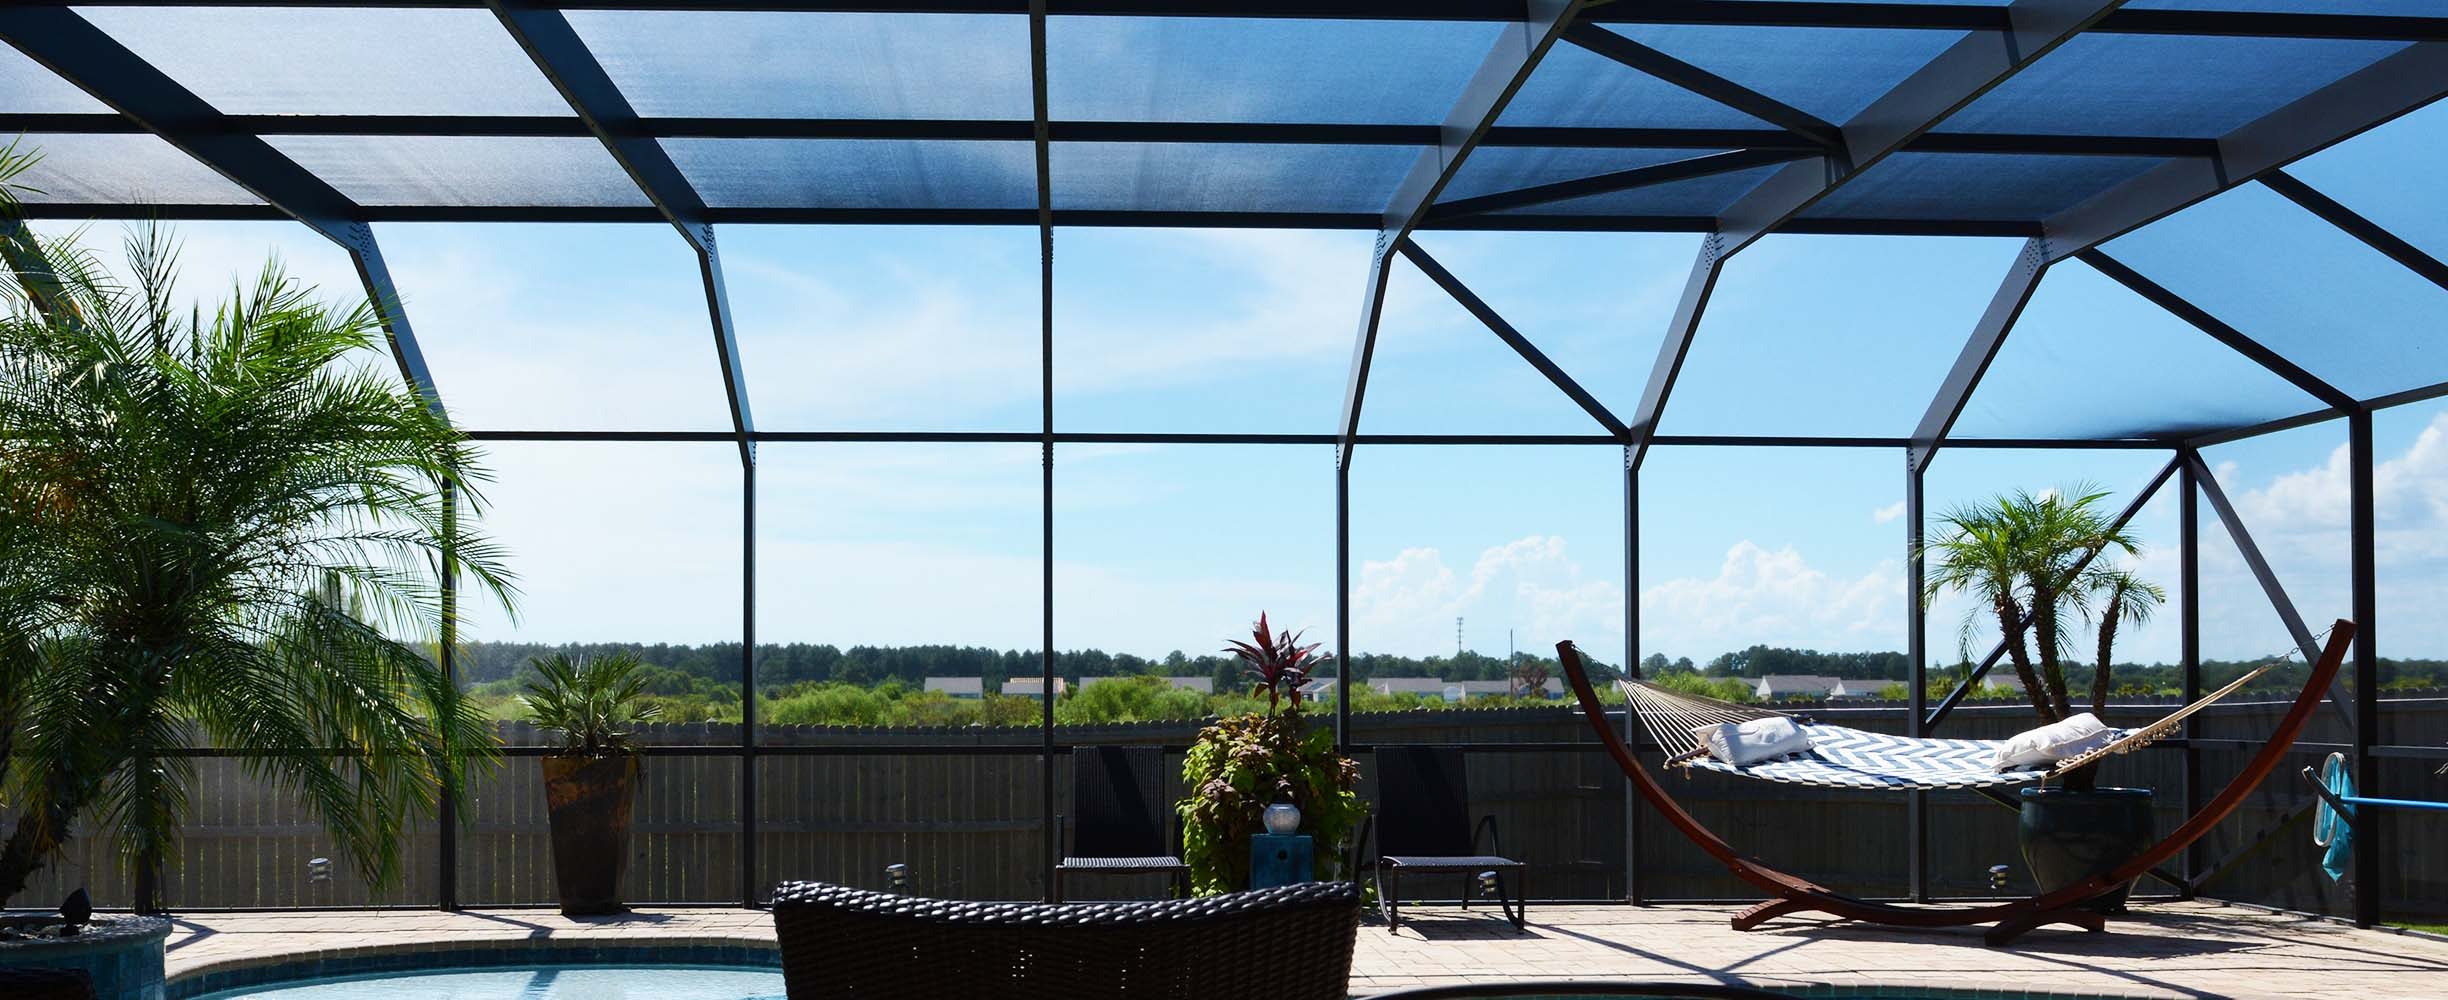 Pool enclosure designed and built to southern weather standards in Foley, Alabama